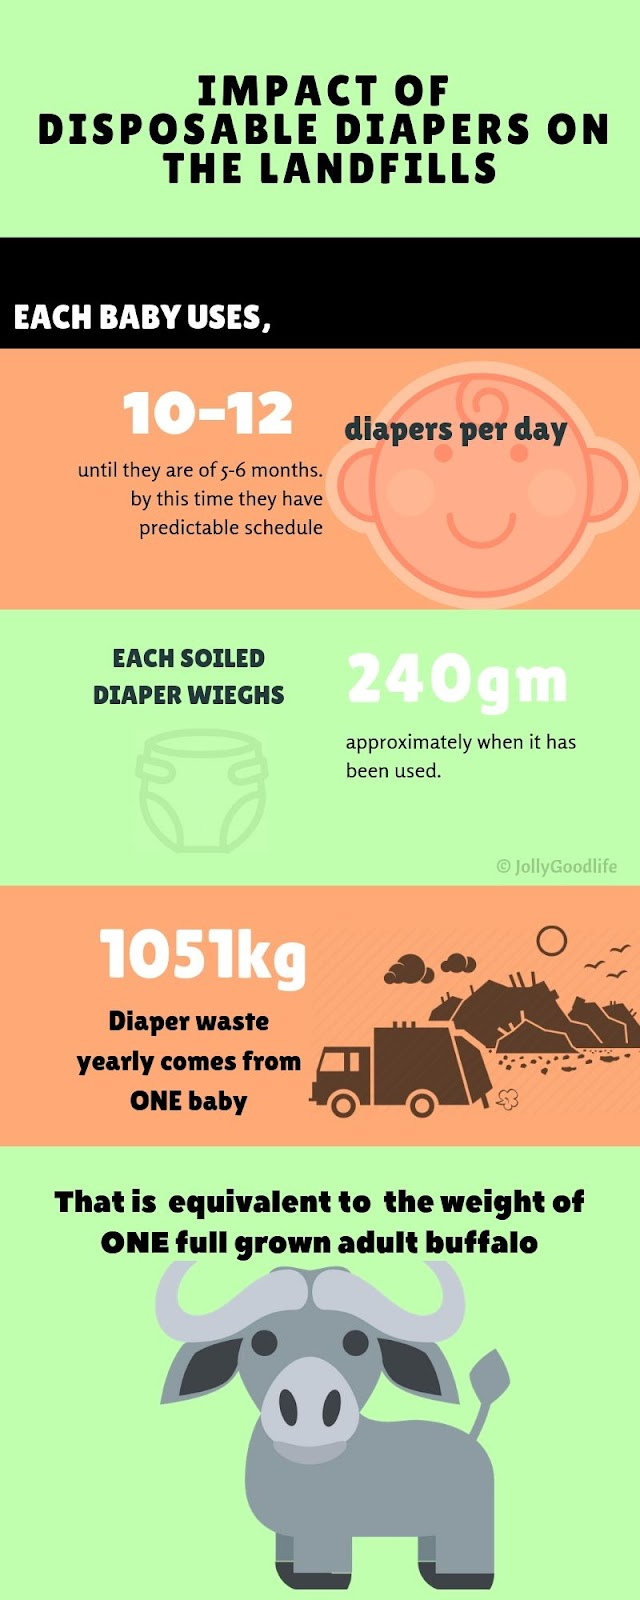 Impact Of Disposable Diapers On The Landfills